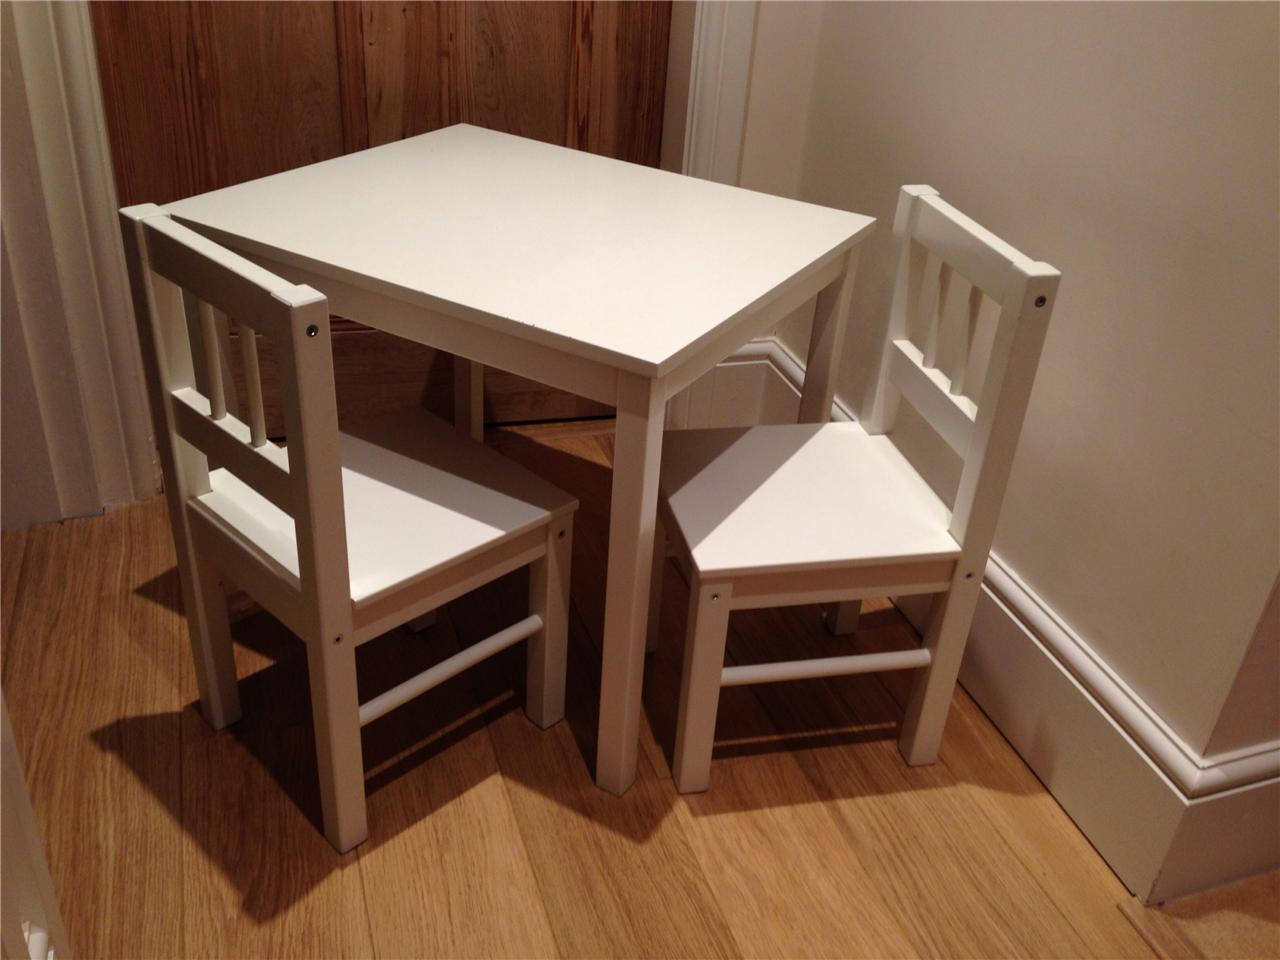 Kids Wooden Table And Chairs Ikea Childrens White Wooden Table And Chairs Pick Near